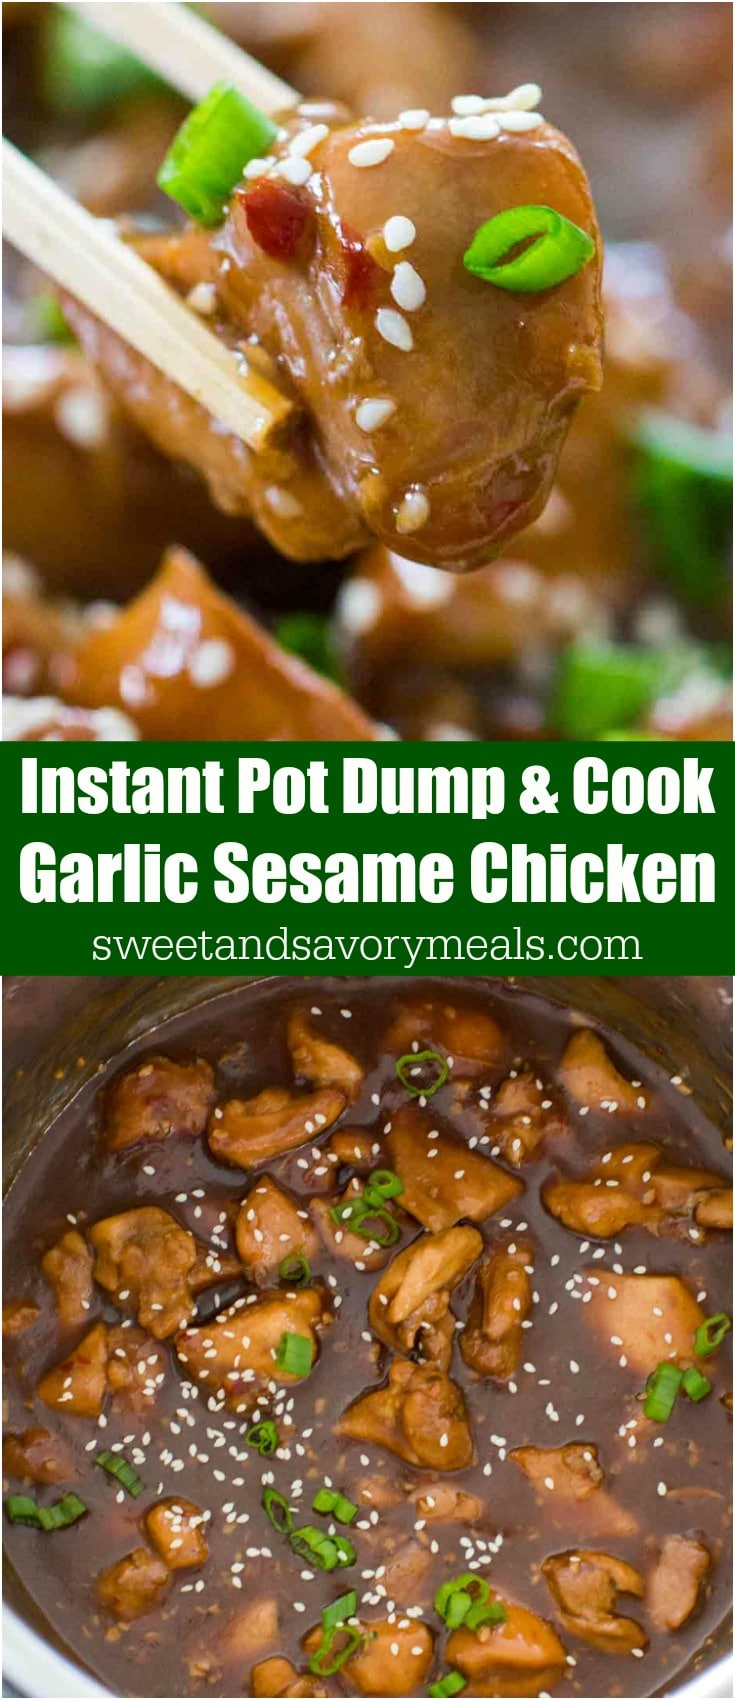 Instant Pot Garlic Sesame Chicken is one of the easiest dump and cook meals, that is very tasty and flavorful and ready in just 30 minutes.